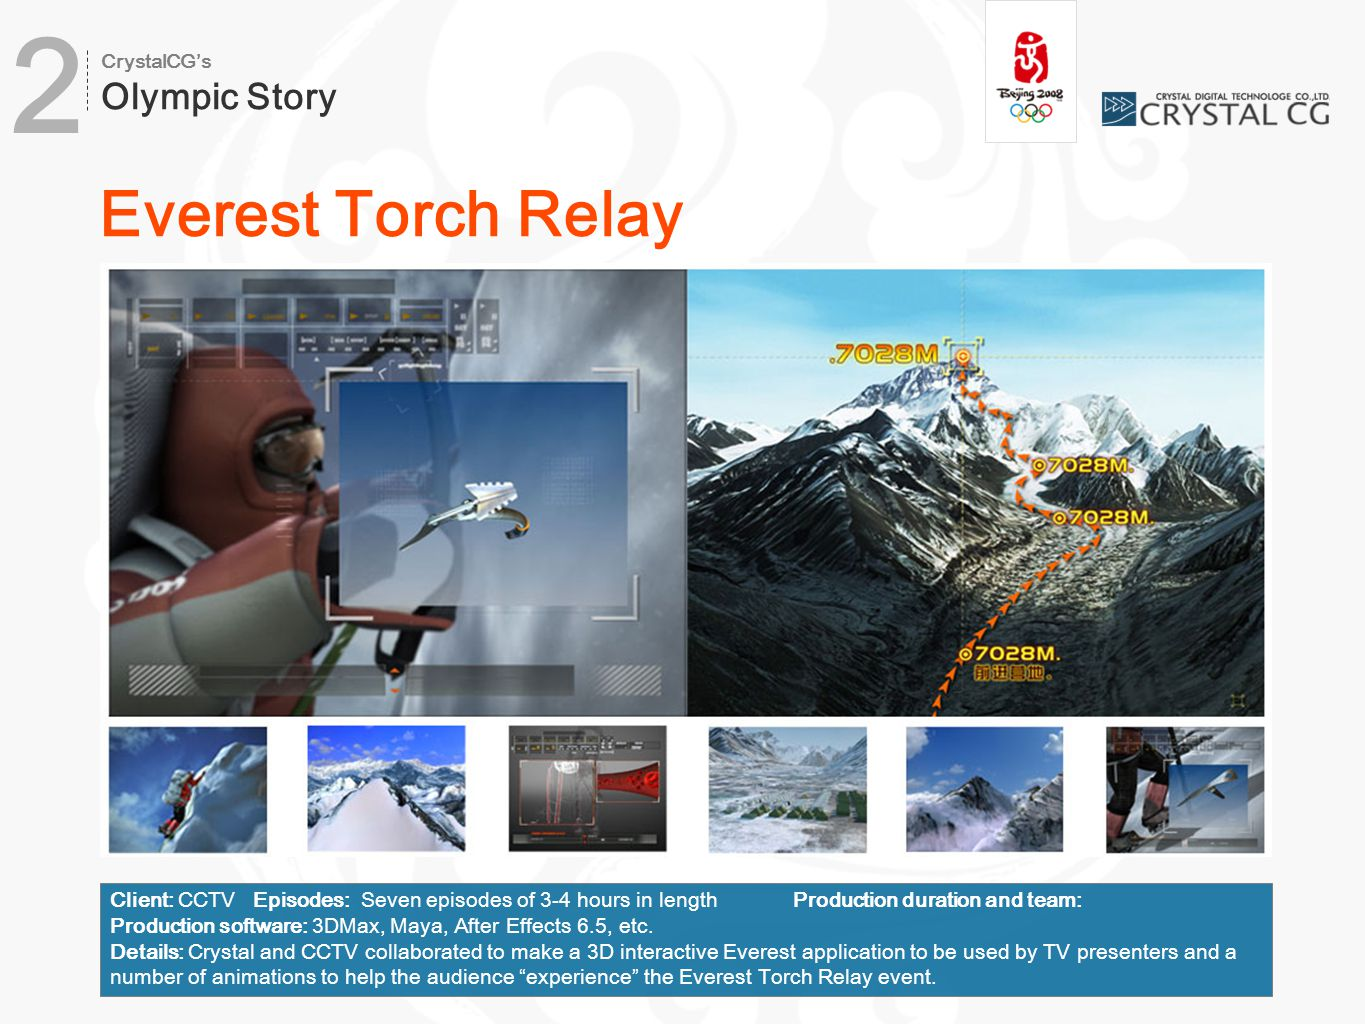 Everest Torch Relay Client: CCTV Episodes: Seven episodes of 3-4 hours in lengthProduction duration and team: Production software: 3DMax, Maya, After Effects 6.5, etc.